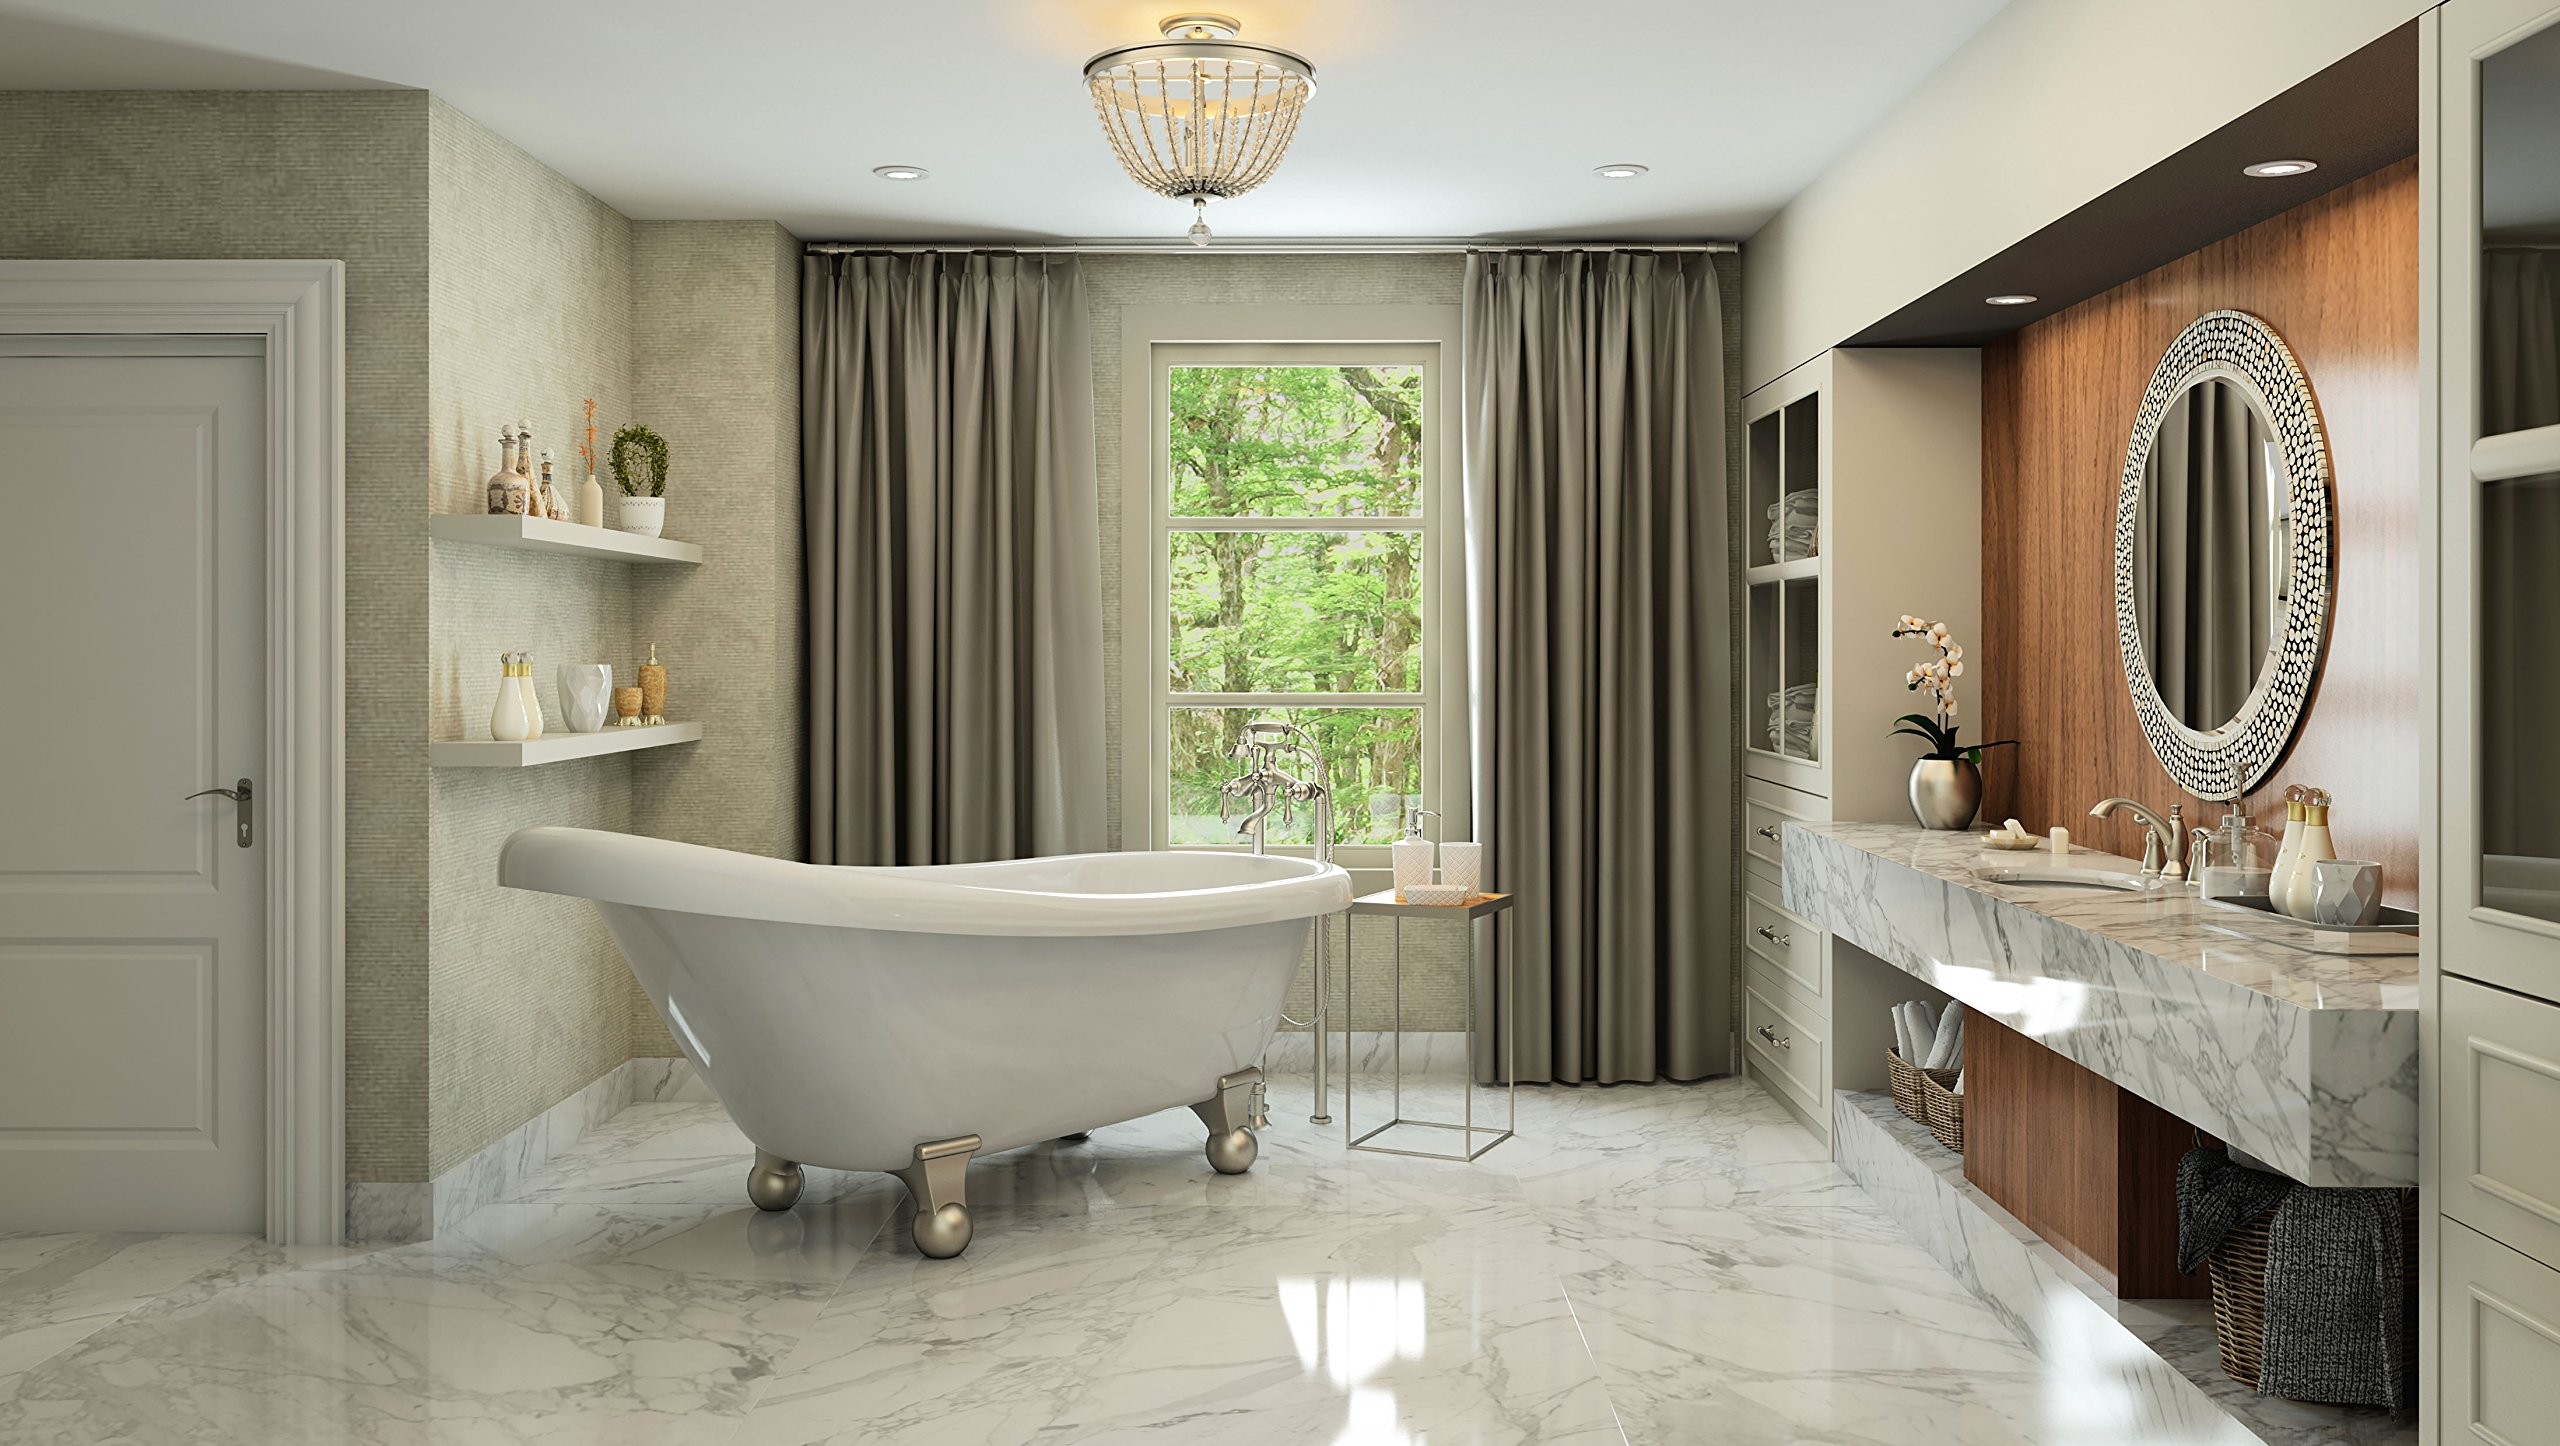 Luxury 60 inch Modern Clawfoot Tub in White with Stand-Alone Freestanding Tub Design, Includes Modern Brushed Nickel Cannonball Feet and Drain, From The Brookdale Collection by Pelham & White (Image #2)